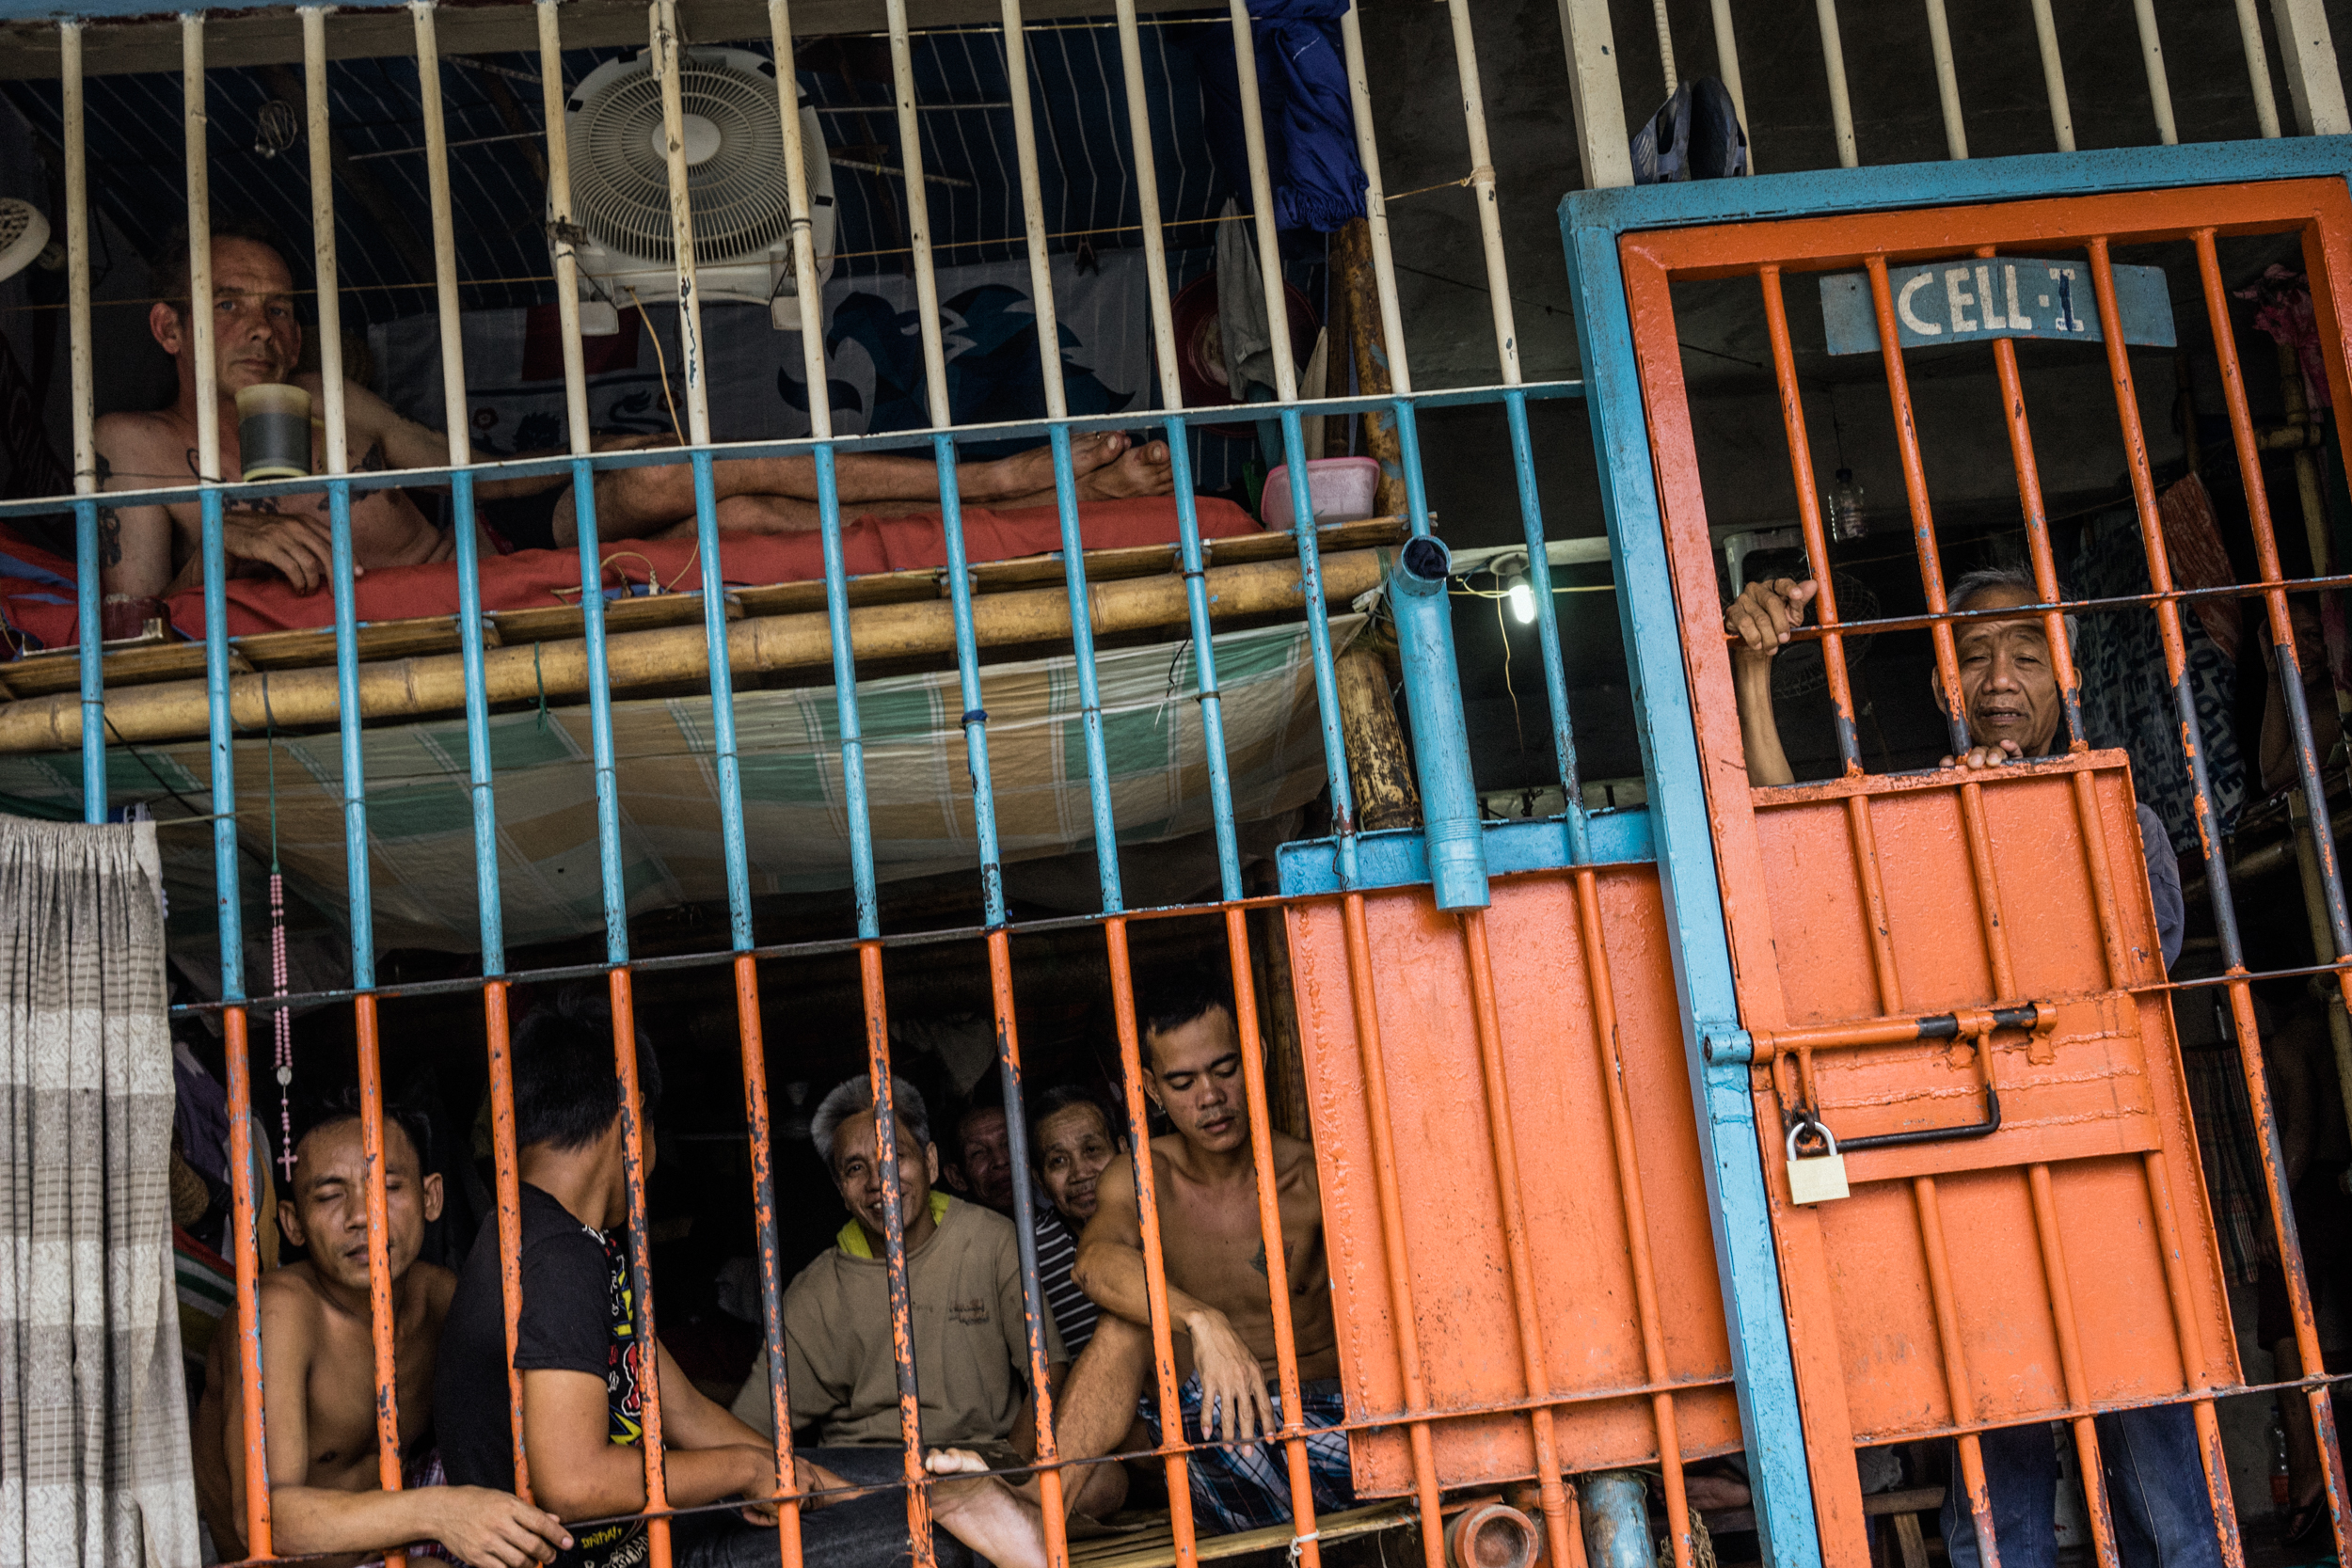 Kalibo, Philippines - September 20, 2015: Inmates at the local jail, where Celia Robelo, a Filipina woman, is being held for human trafficking and illegal recruitment charges following the death of a Filipino seafarer. Robelo claims that she did not have any knowledge of the illegal nature of her recruitment, claiming she only wanted to help these men find work and a way out of poverty. Hannah Reyes